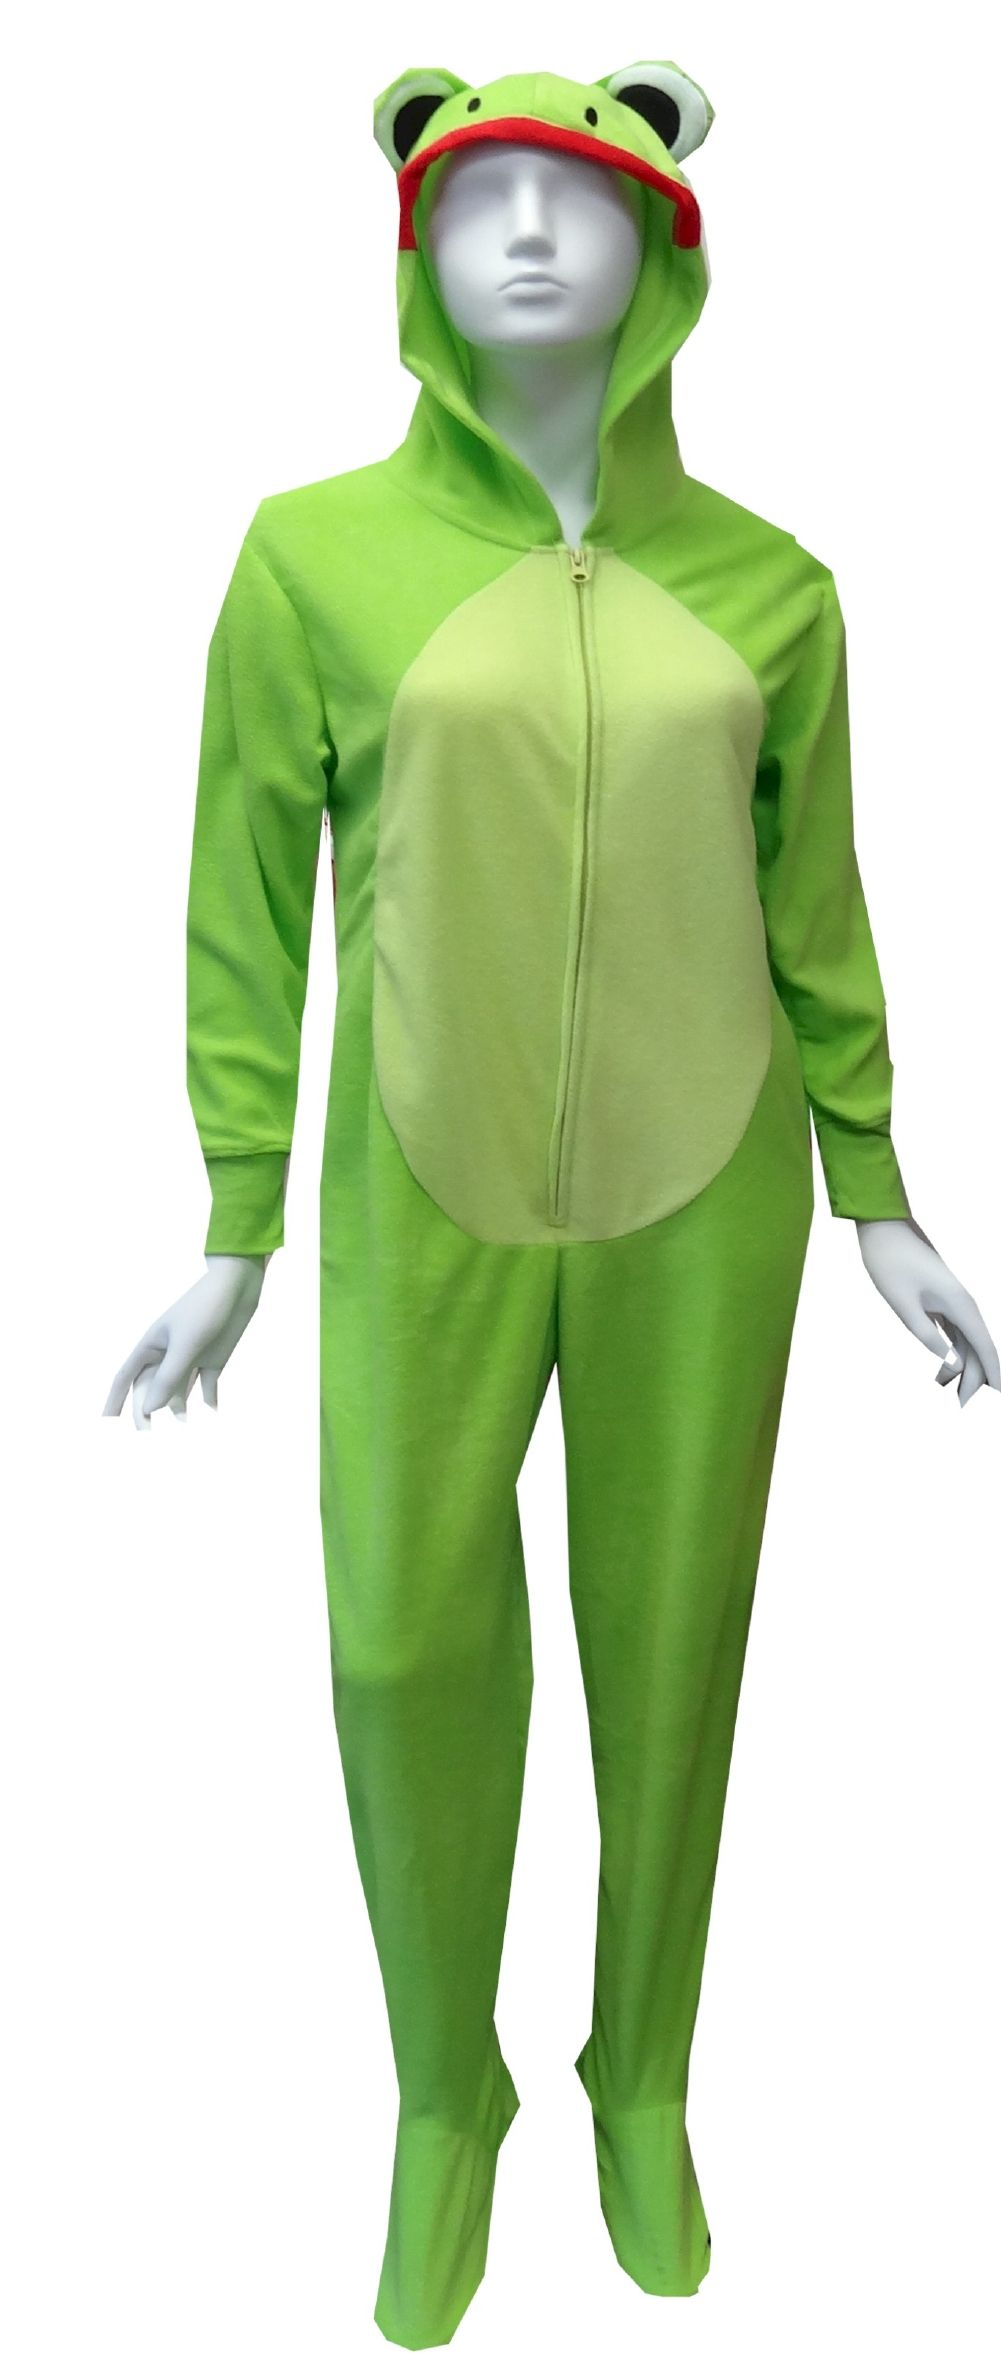 3a92a16a0d7f Green Frog Hooded Onesie Footie Pajama  35 Hop to it!! These green ...